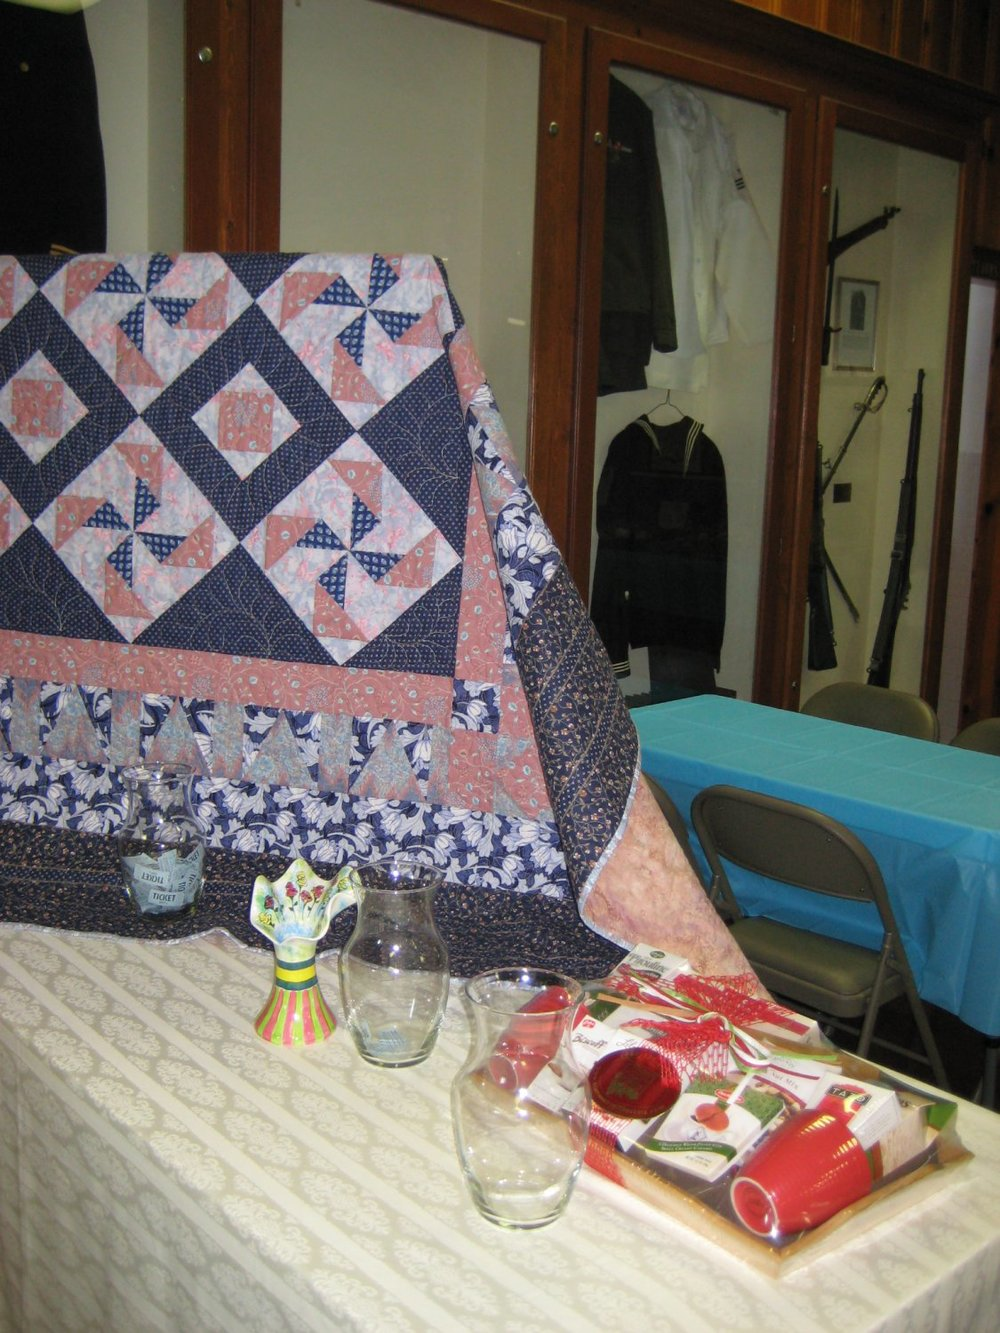 Raffle Items: The quilt was handcrafted and donated by Alice Washburn, Nancie Cameron's sister; the ceramic vase was handcrafted and donated by Teri Nudo; and the Coffee and Tea Gift Basket was donated by Loretta Quigley.